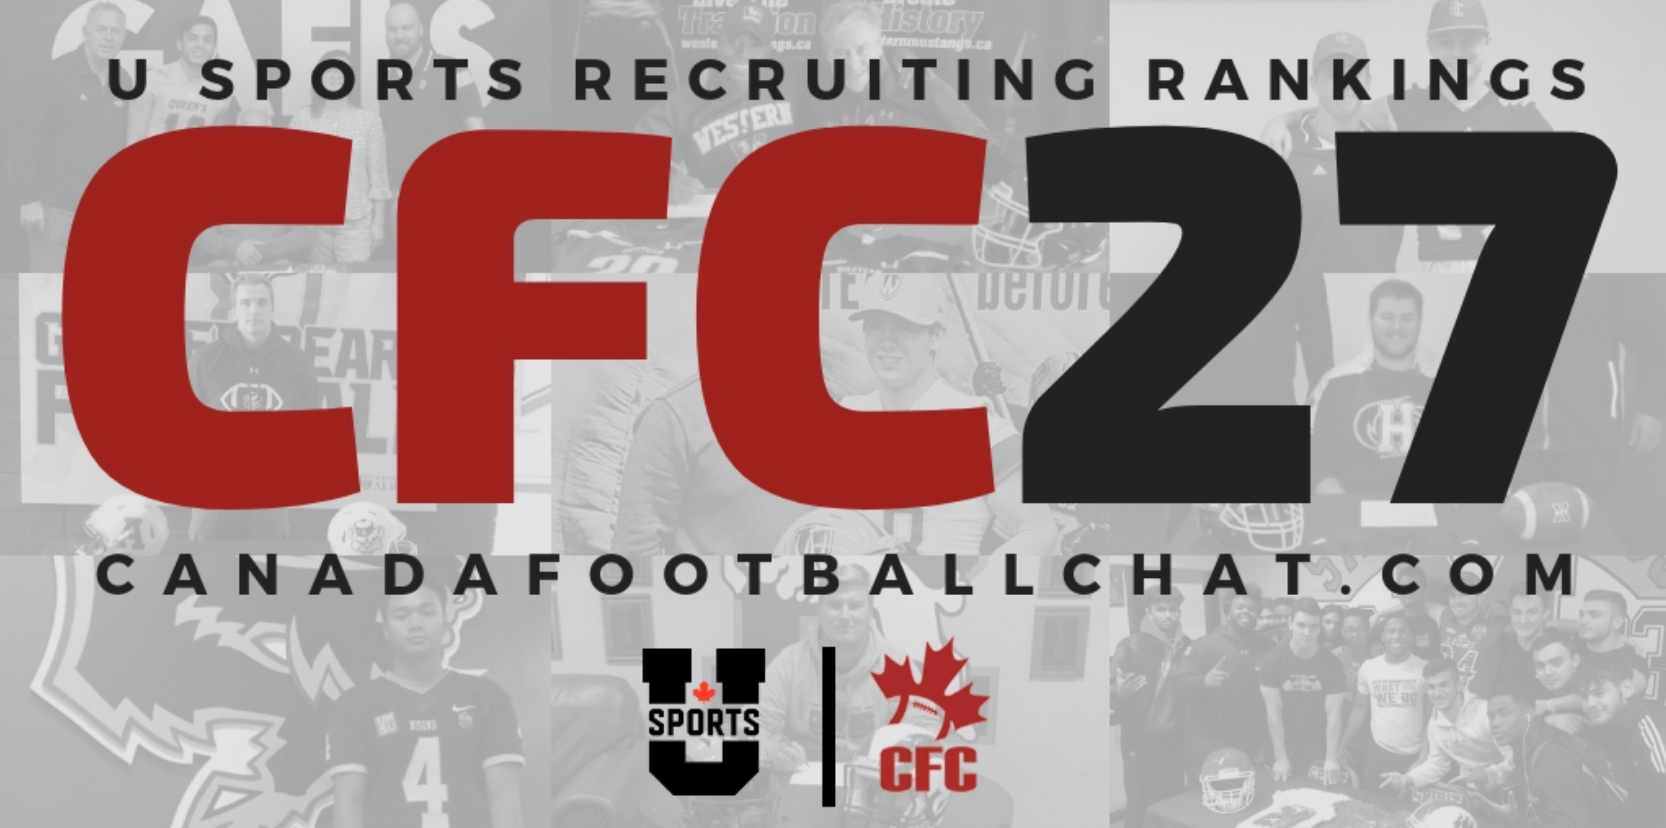 CFC27 CLASS RANKINGS (13): Western and Laval take over in total points